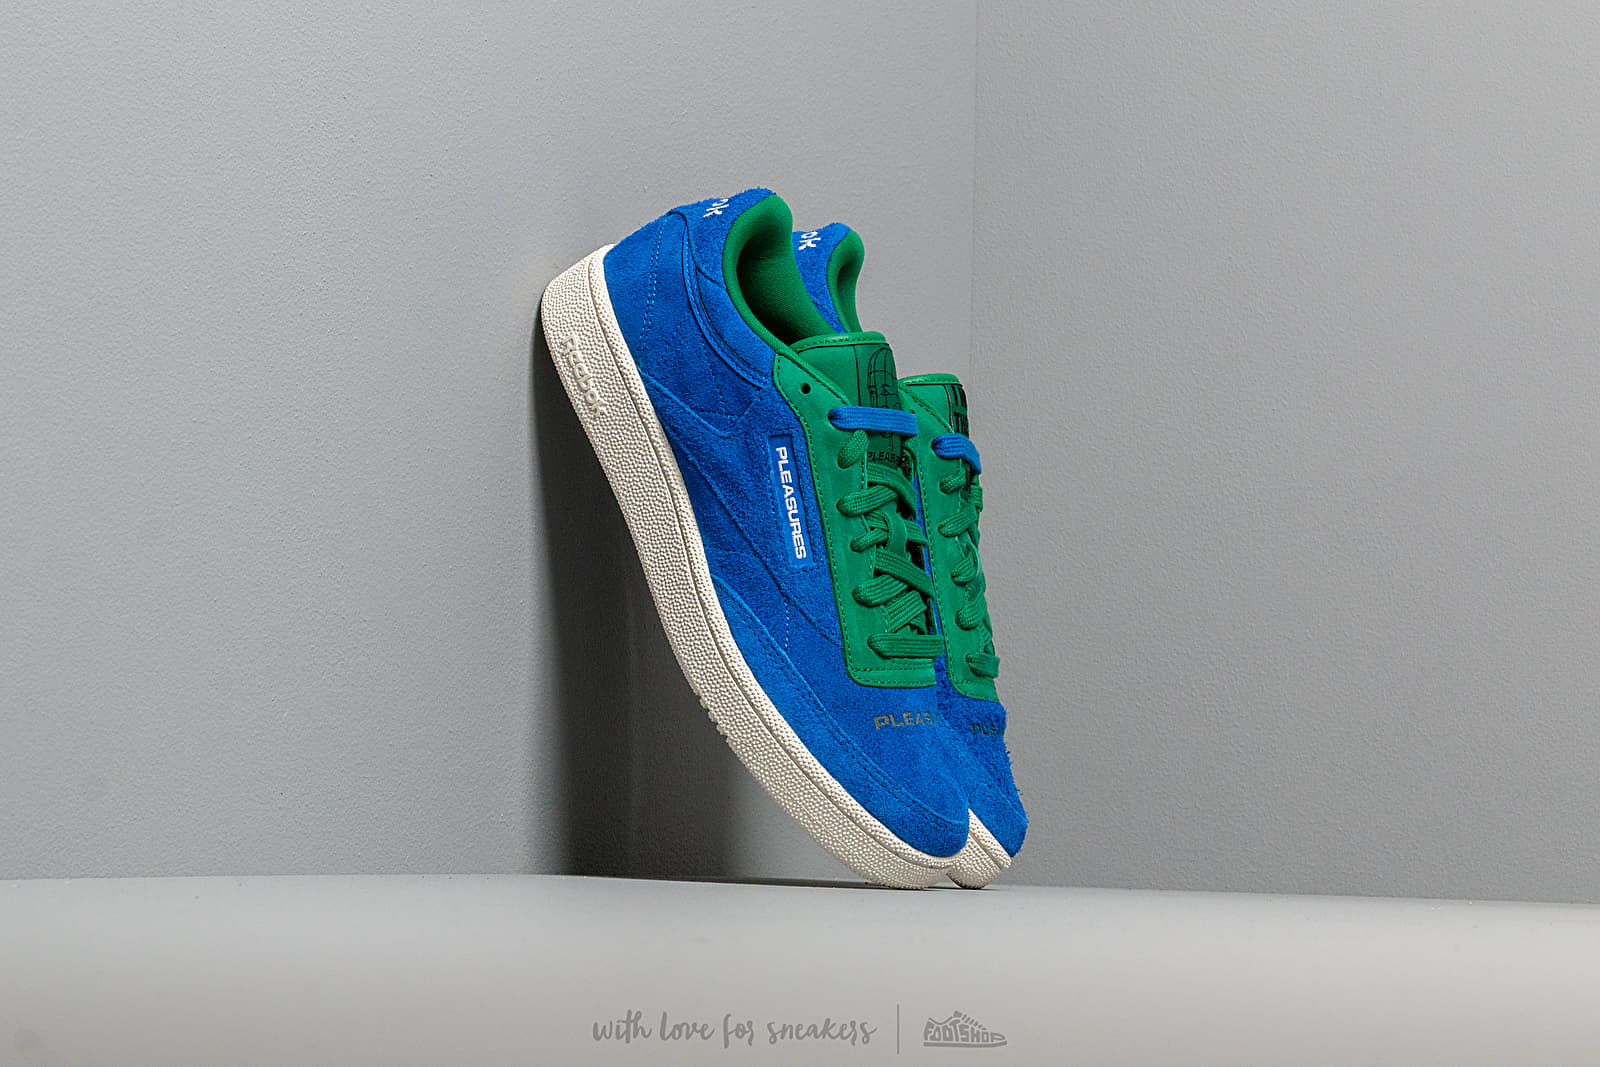 Reebok x Pleasures Club C 85 Vital Blue/ Green/ Chalk/ White za skvelú cenu 106 € kúpite na Footshop.sk